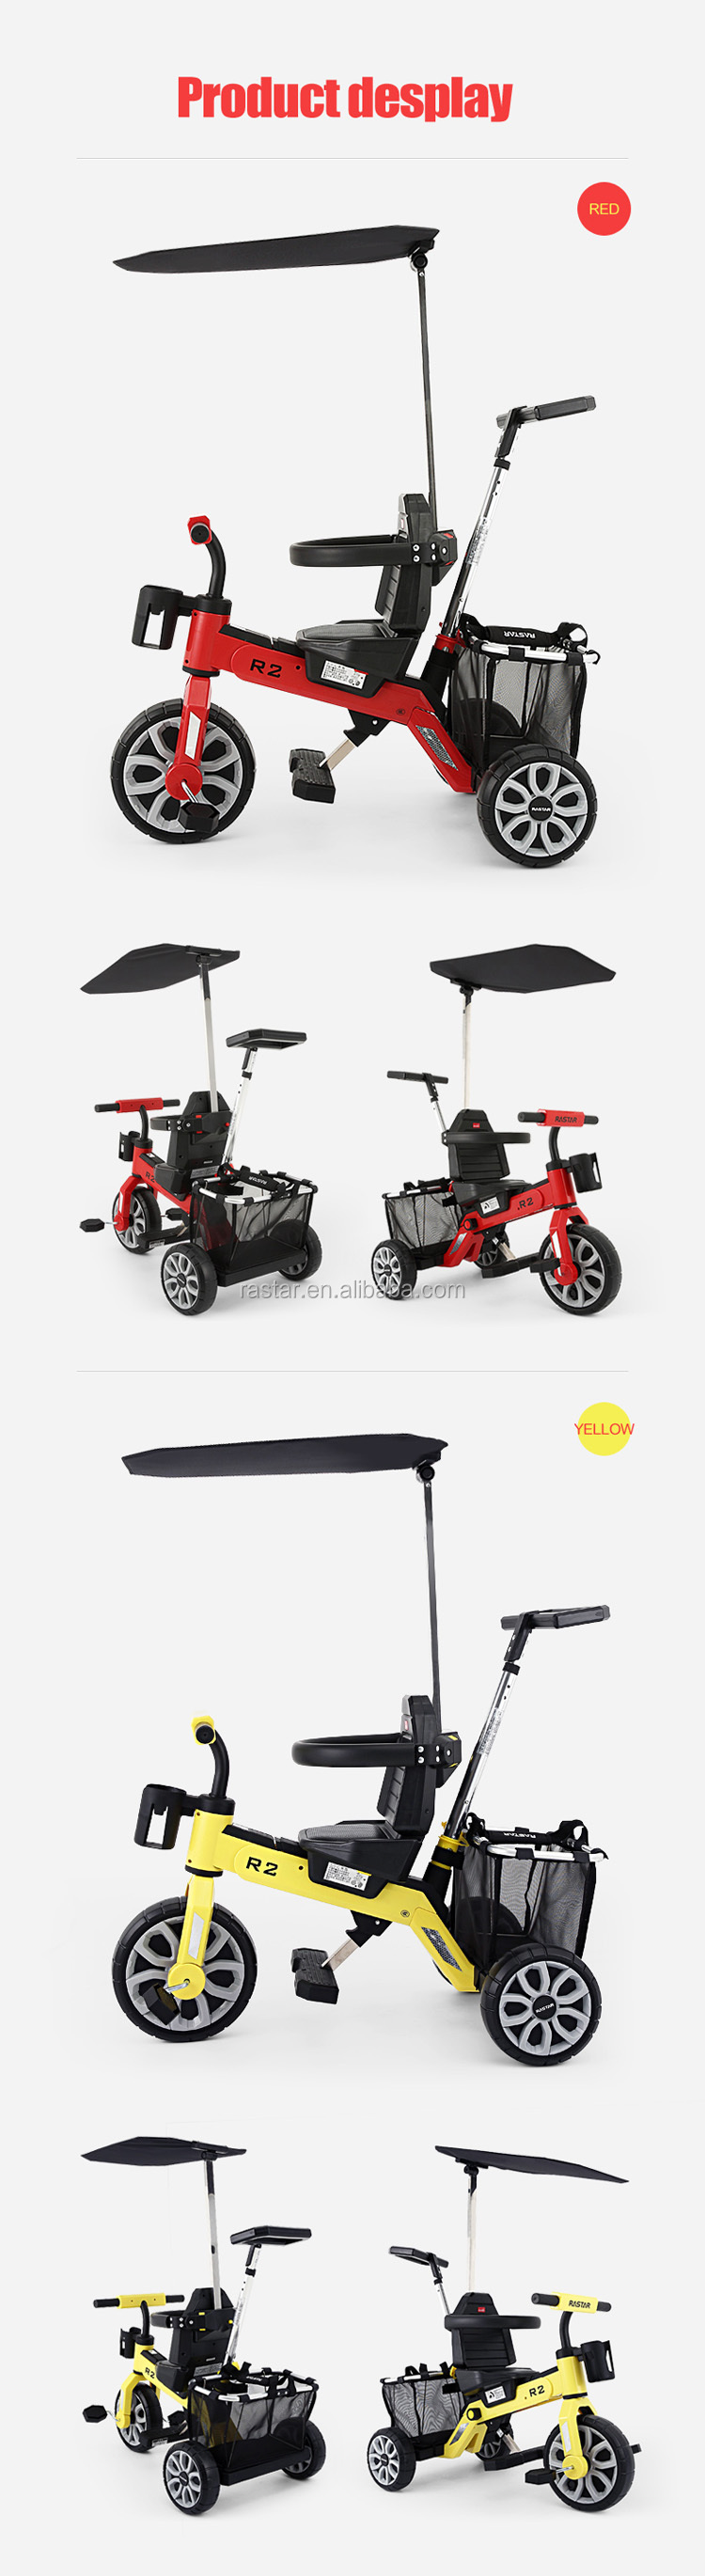 RASTAR factory wholesale multi-functions bike folding tricycle for kids 1-6 years